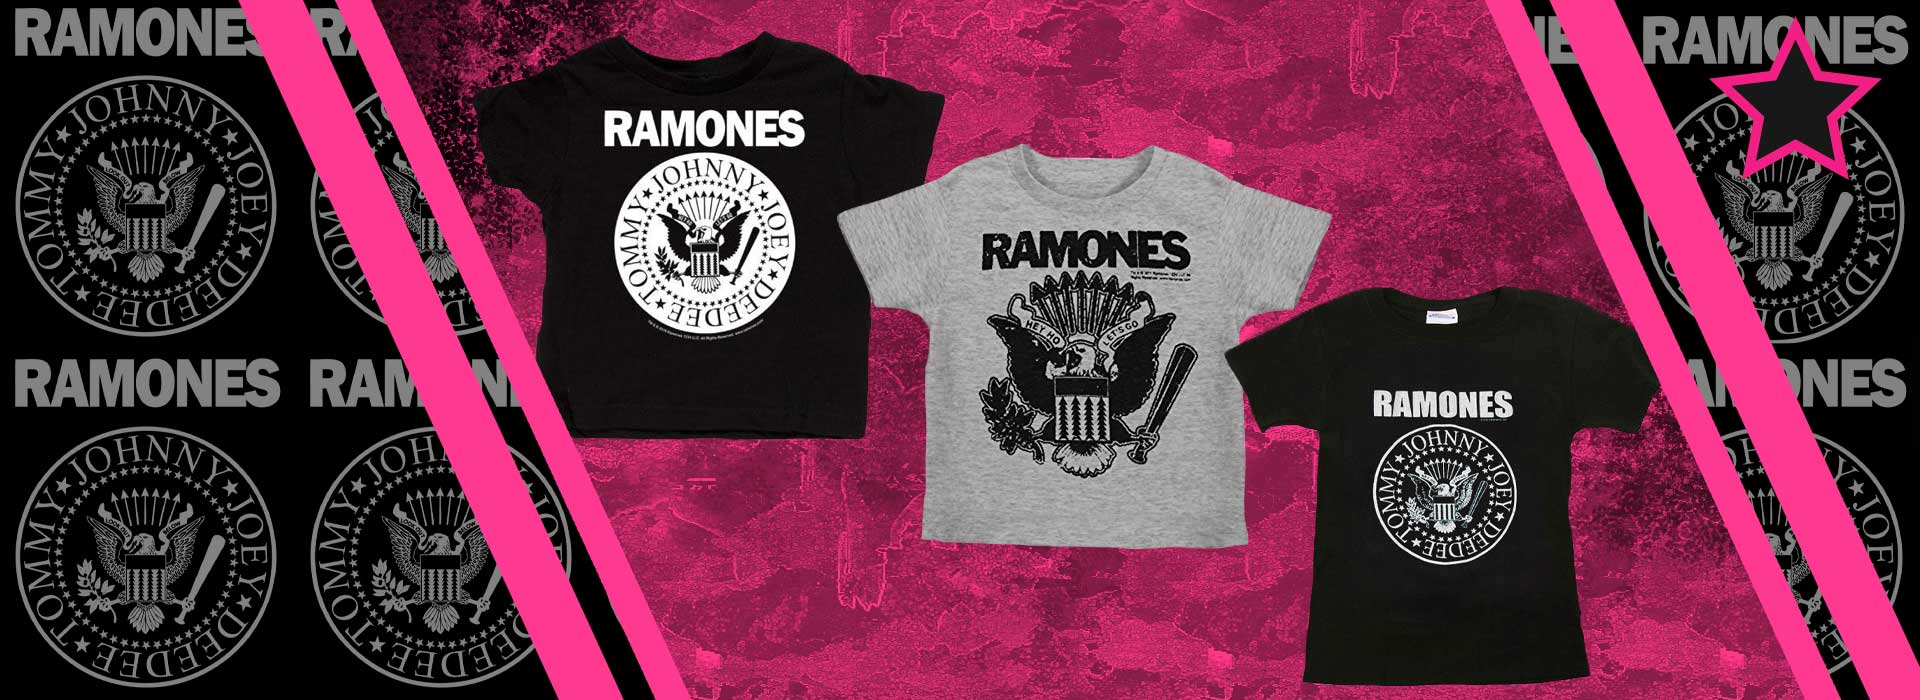 Ramones Rockin' kids and baby clothes